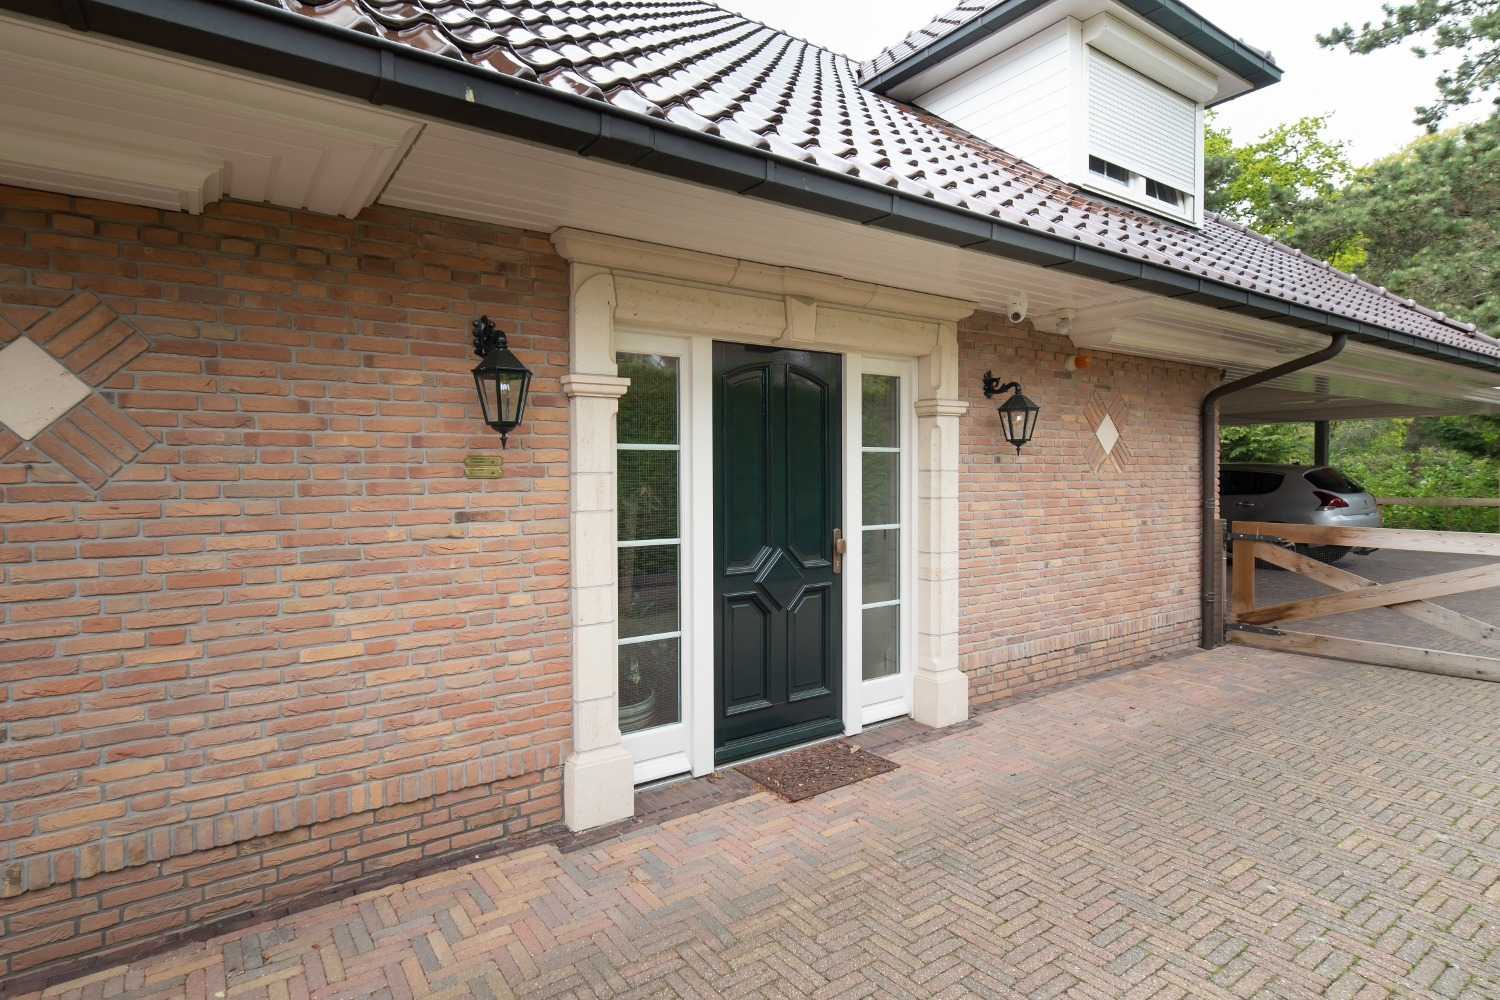 Medium property photo - 'T Capittelgoed 4, 7441 DK Nijverdal